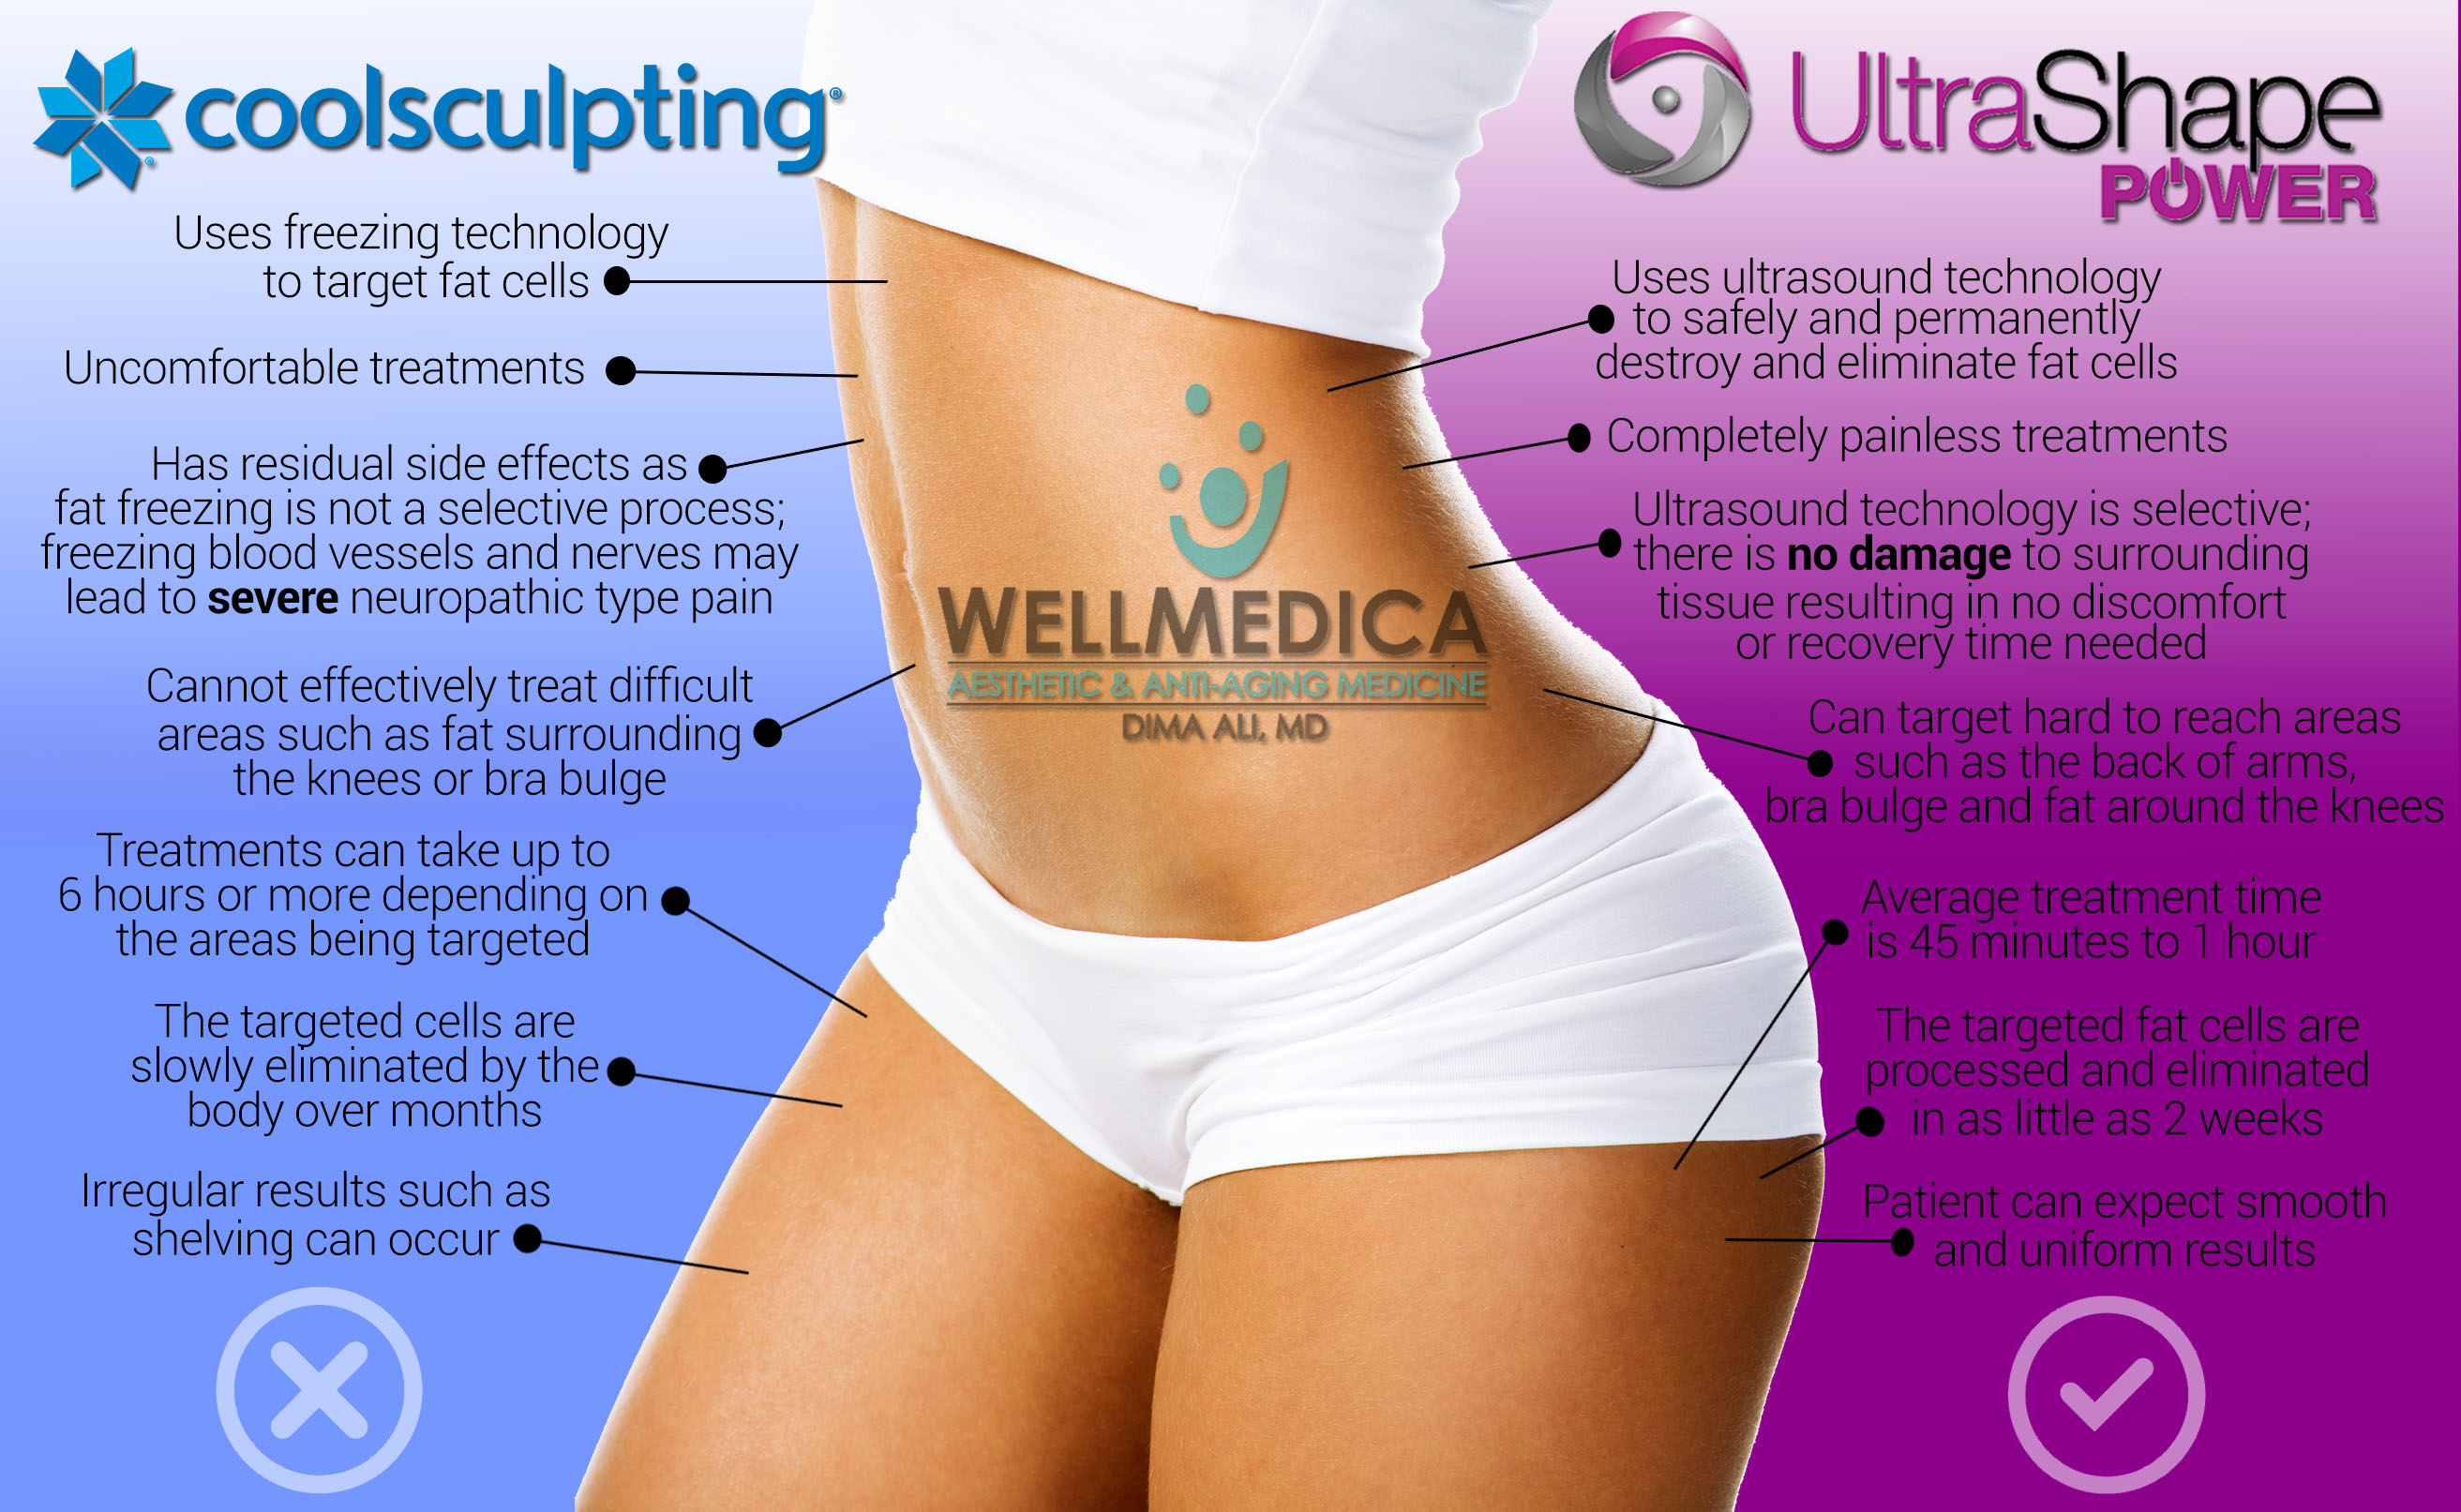 Reston Coolsculpting Permanent Fat Destruction VS UltraShape Power Dr. Dima